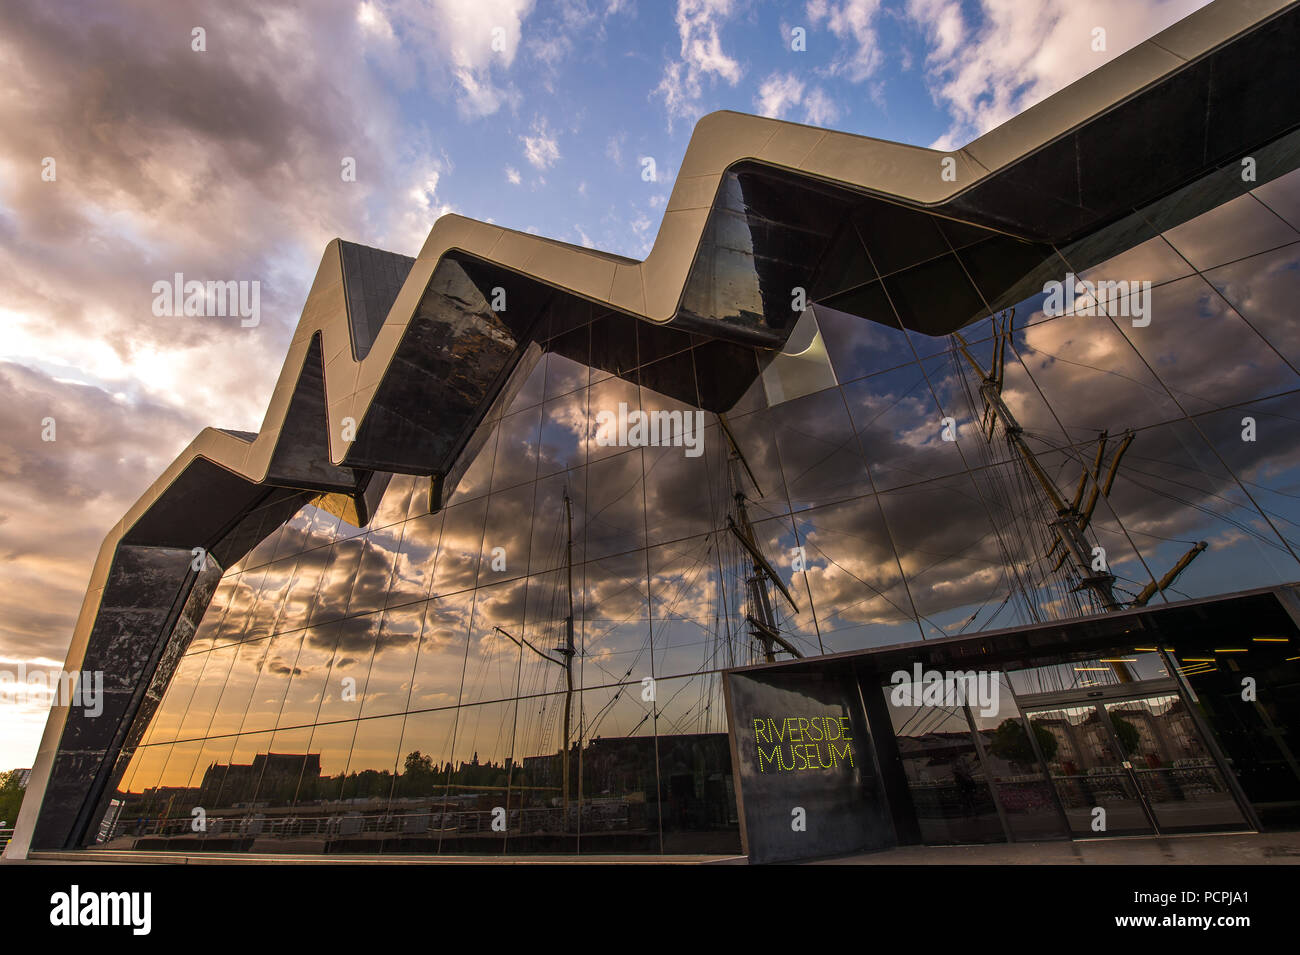 Riverside Museum of Transport, at Pointhouse Quay, Glasgow, Scotland - Stock Image